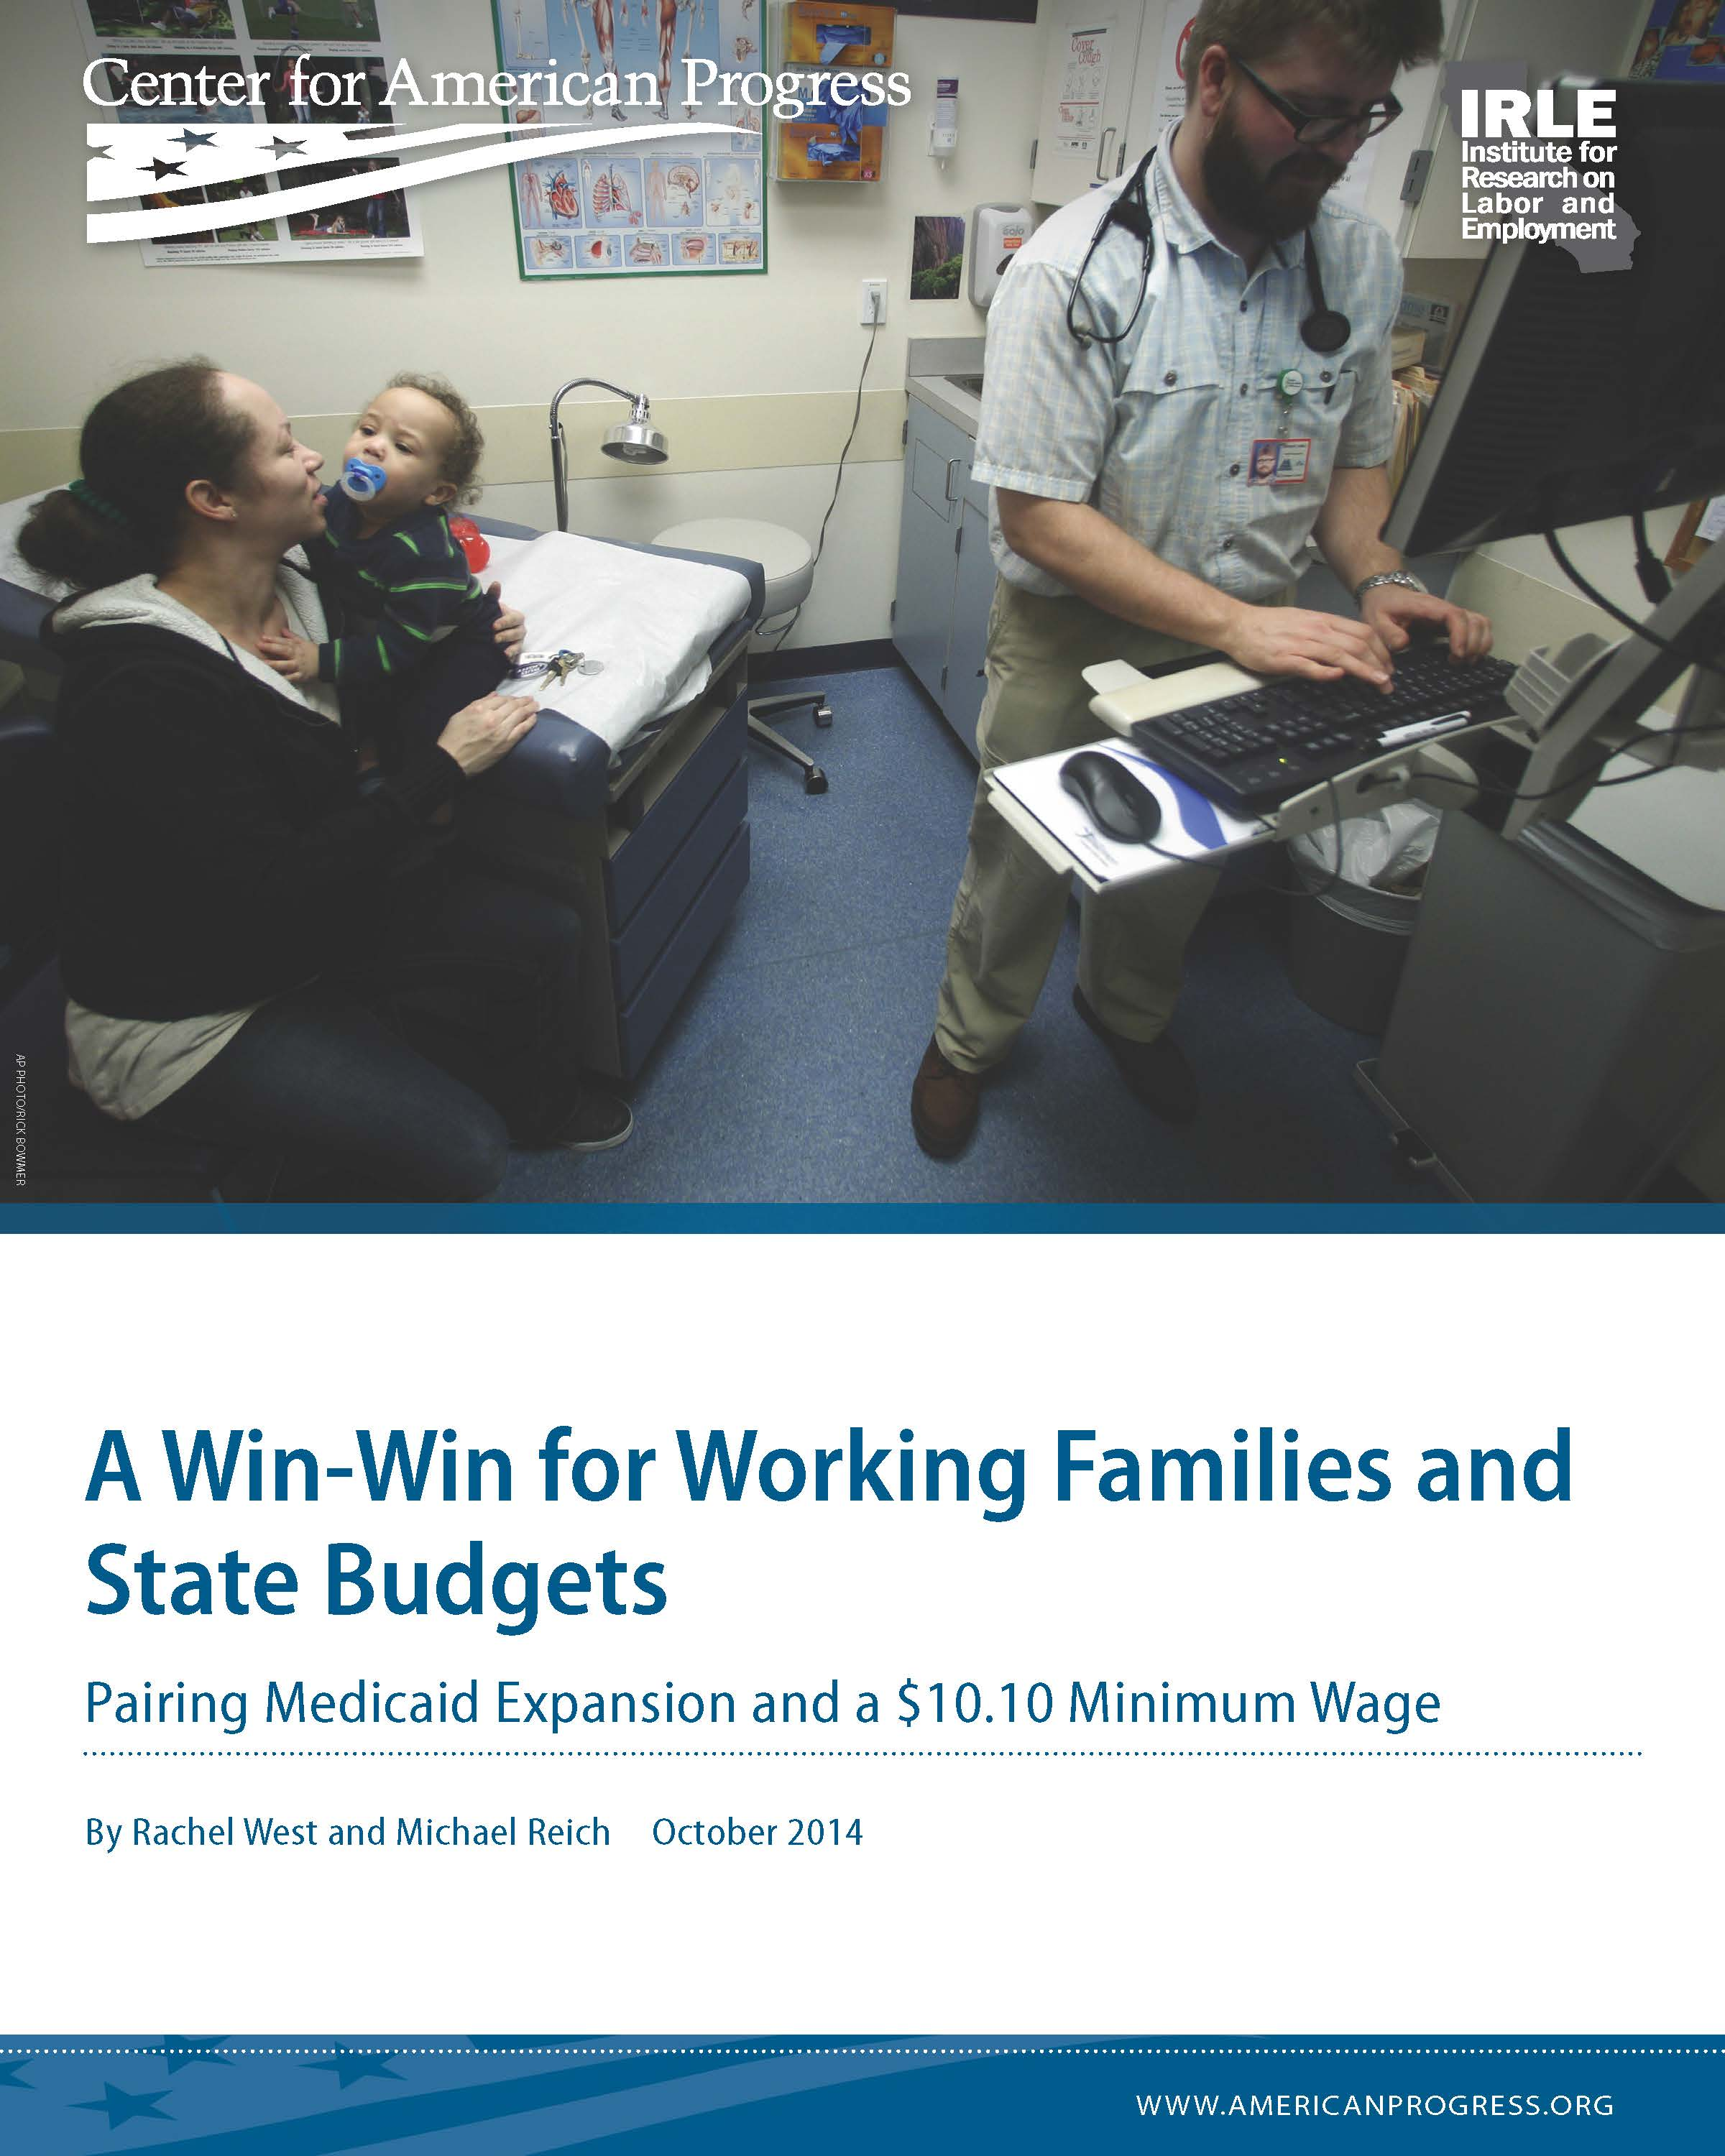 A Win-Win for Working Families and State Budgets